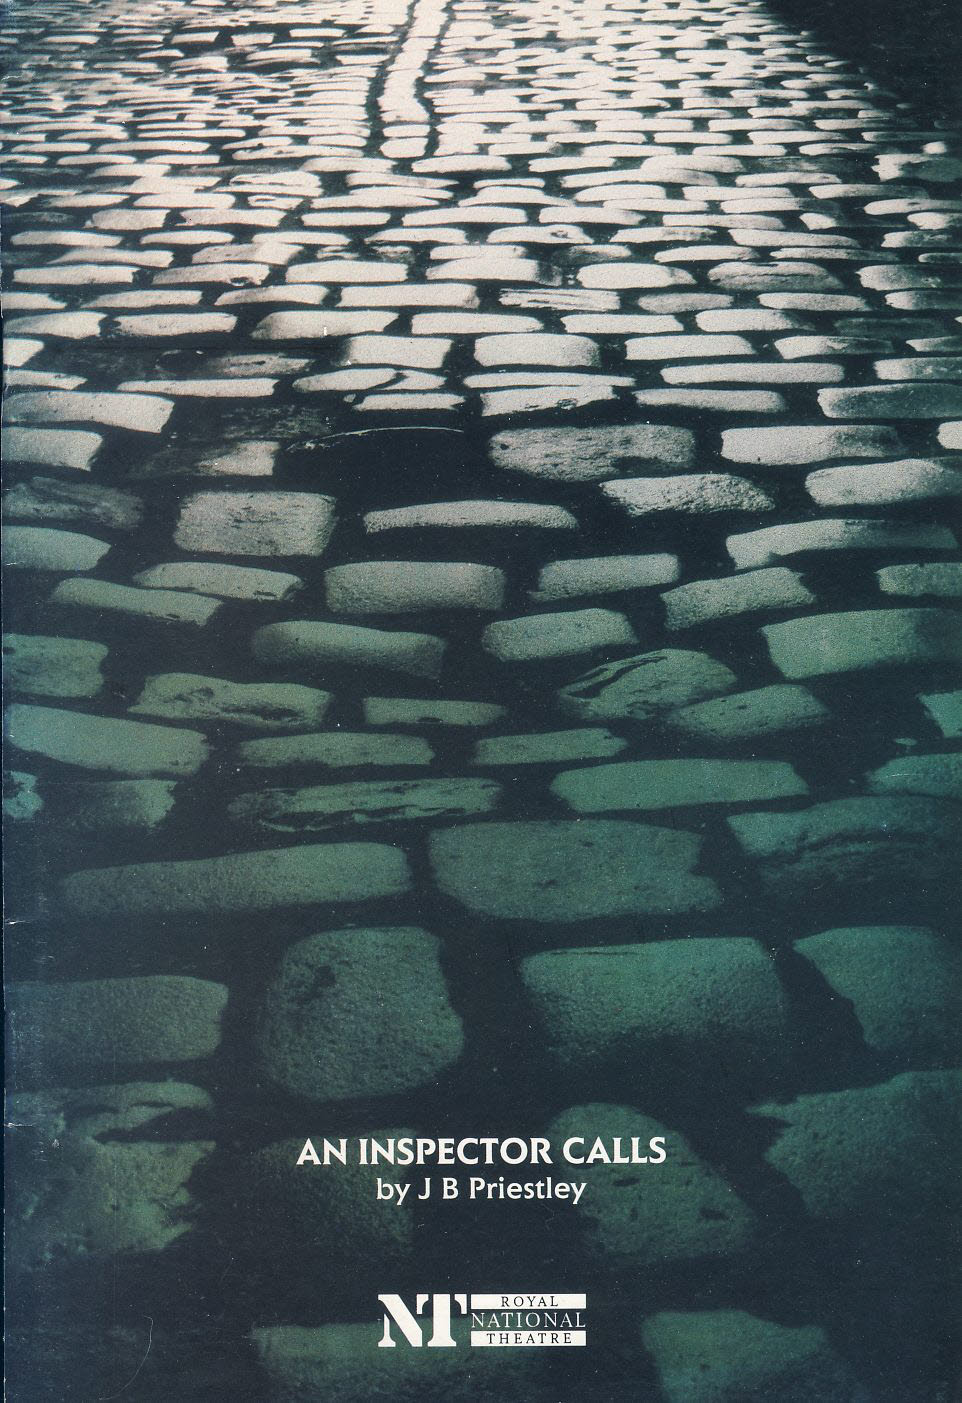 An Inspector Calls JB PRIESTLEY 1992 Royal National Theatre Programme refb101059 Pre-owned Programme in Good Condition. Measures approx 17cm x 24cm